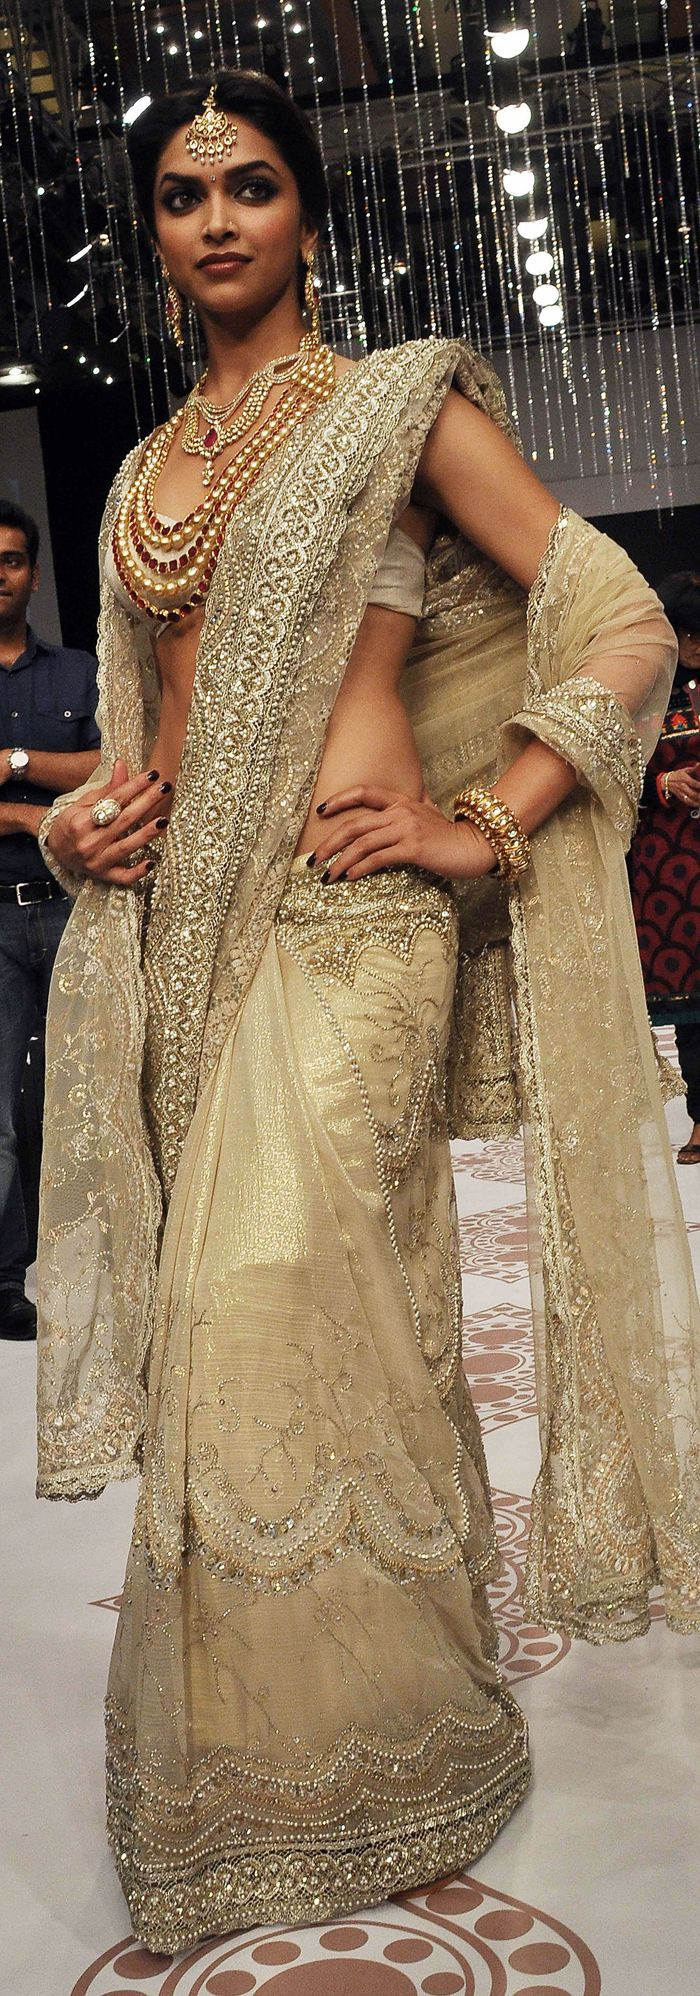 Indian Actor @DeepikaPadukone for Jewelry Designer @FarahKhanAli  http://www.farahkhan.net/ at the India International Jewelery Week, Aug 2010